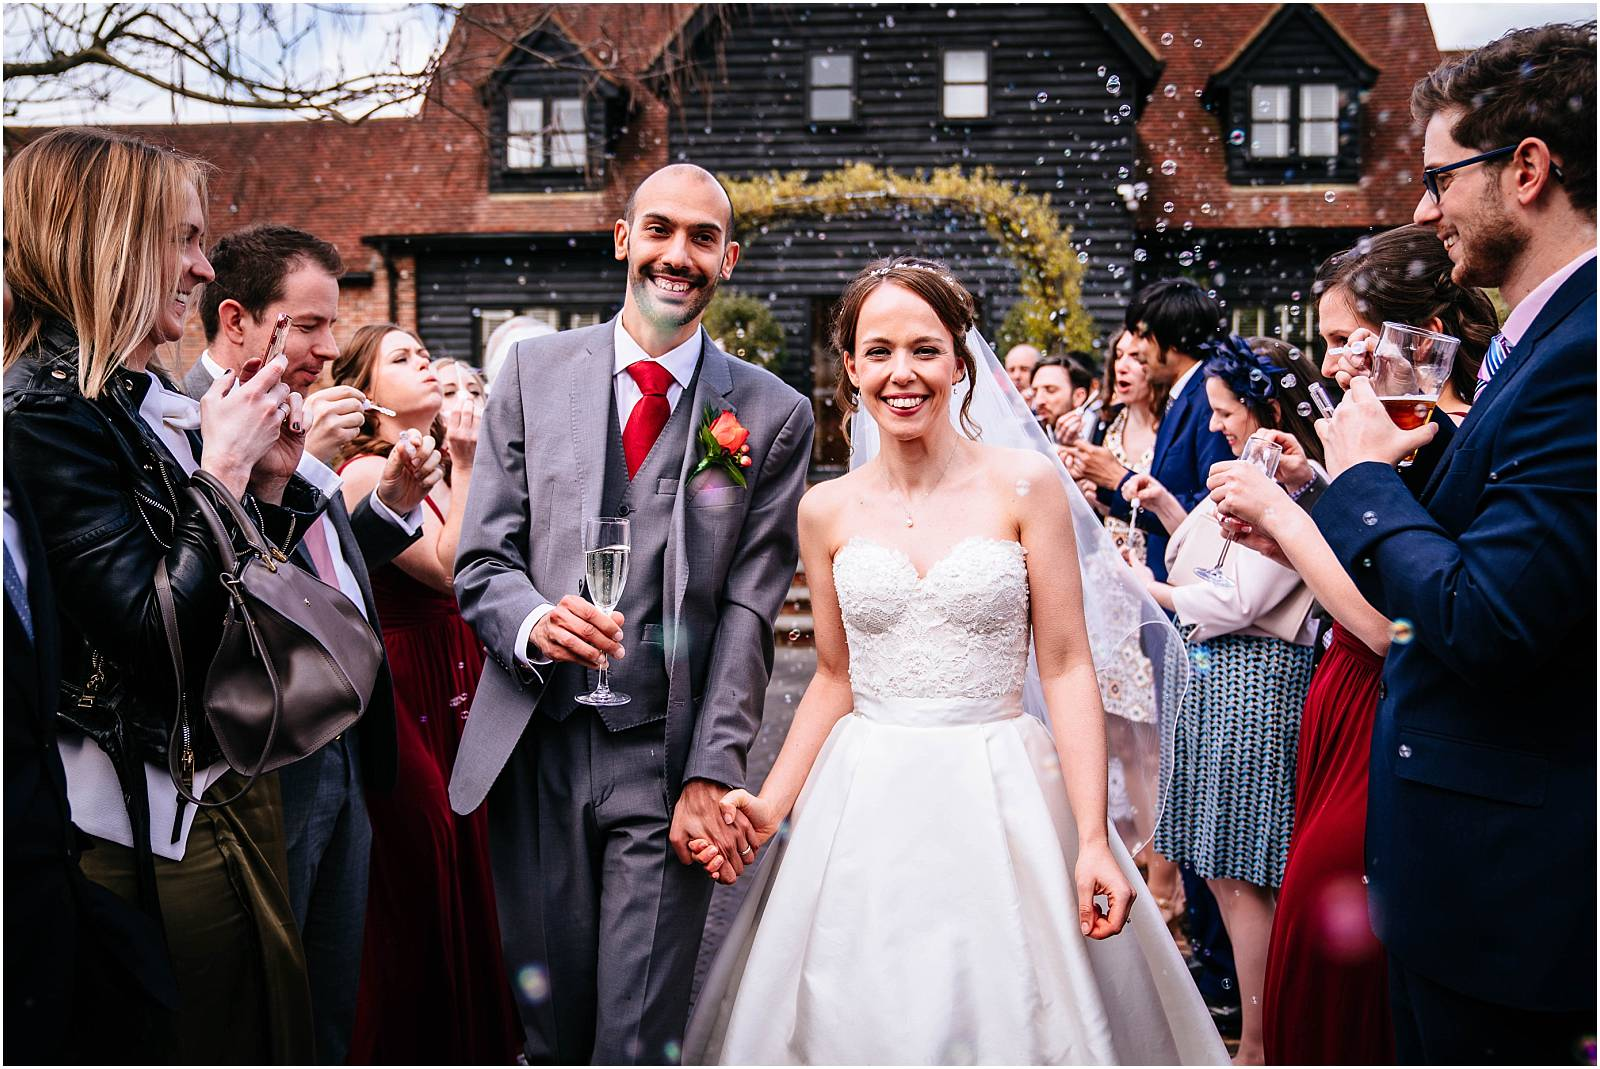 Hertfordshire Wedding Photographer – Harriet & Ryan's Coltsfoot wedding